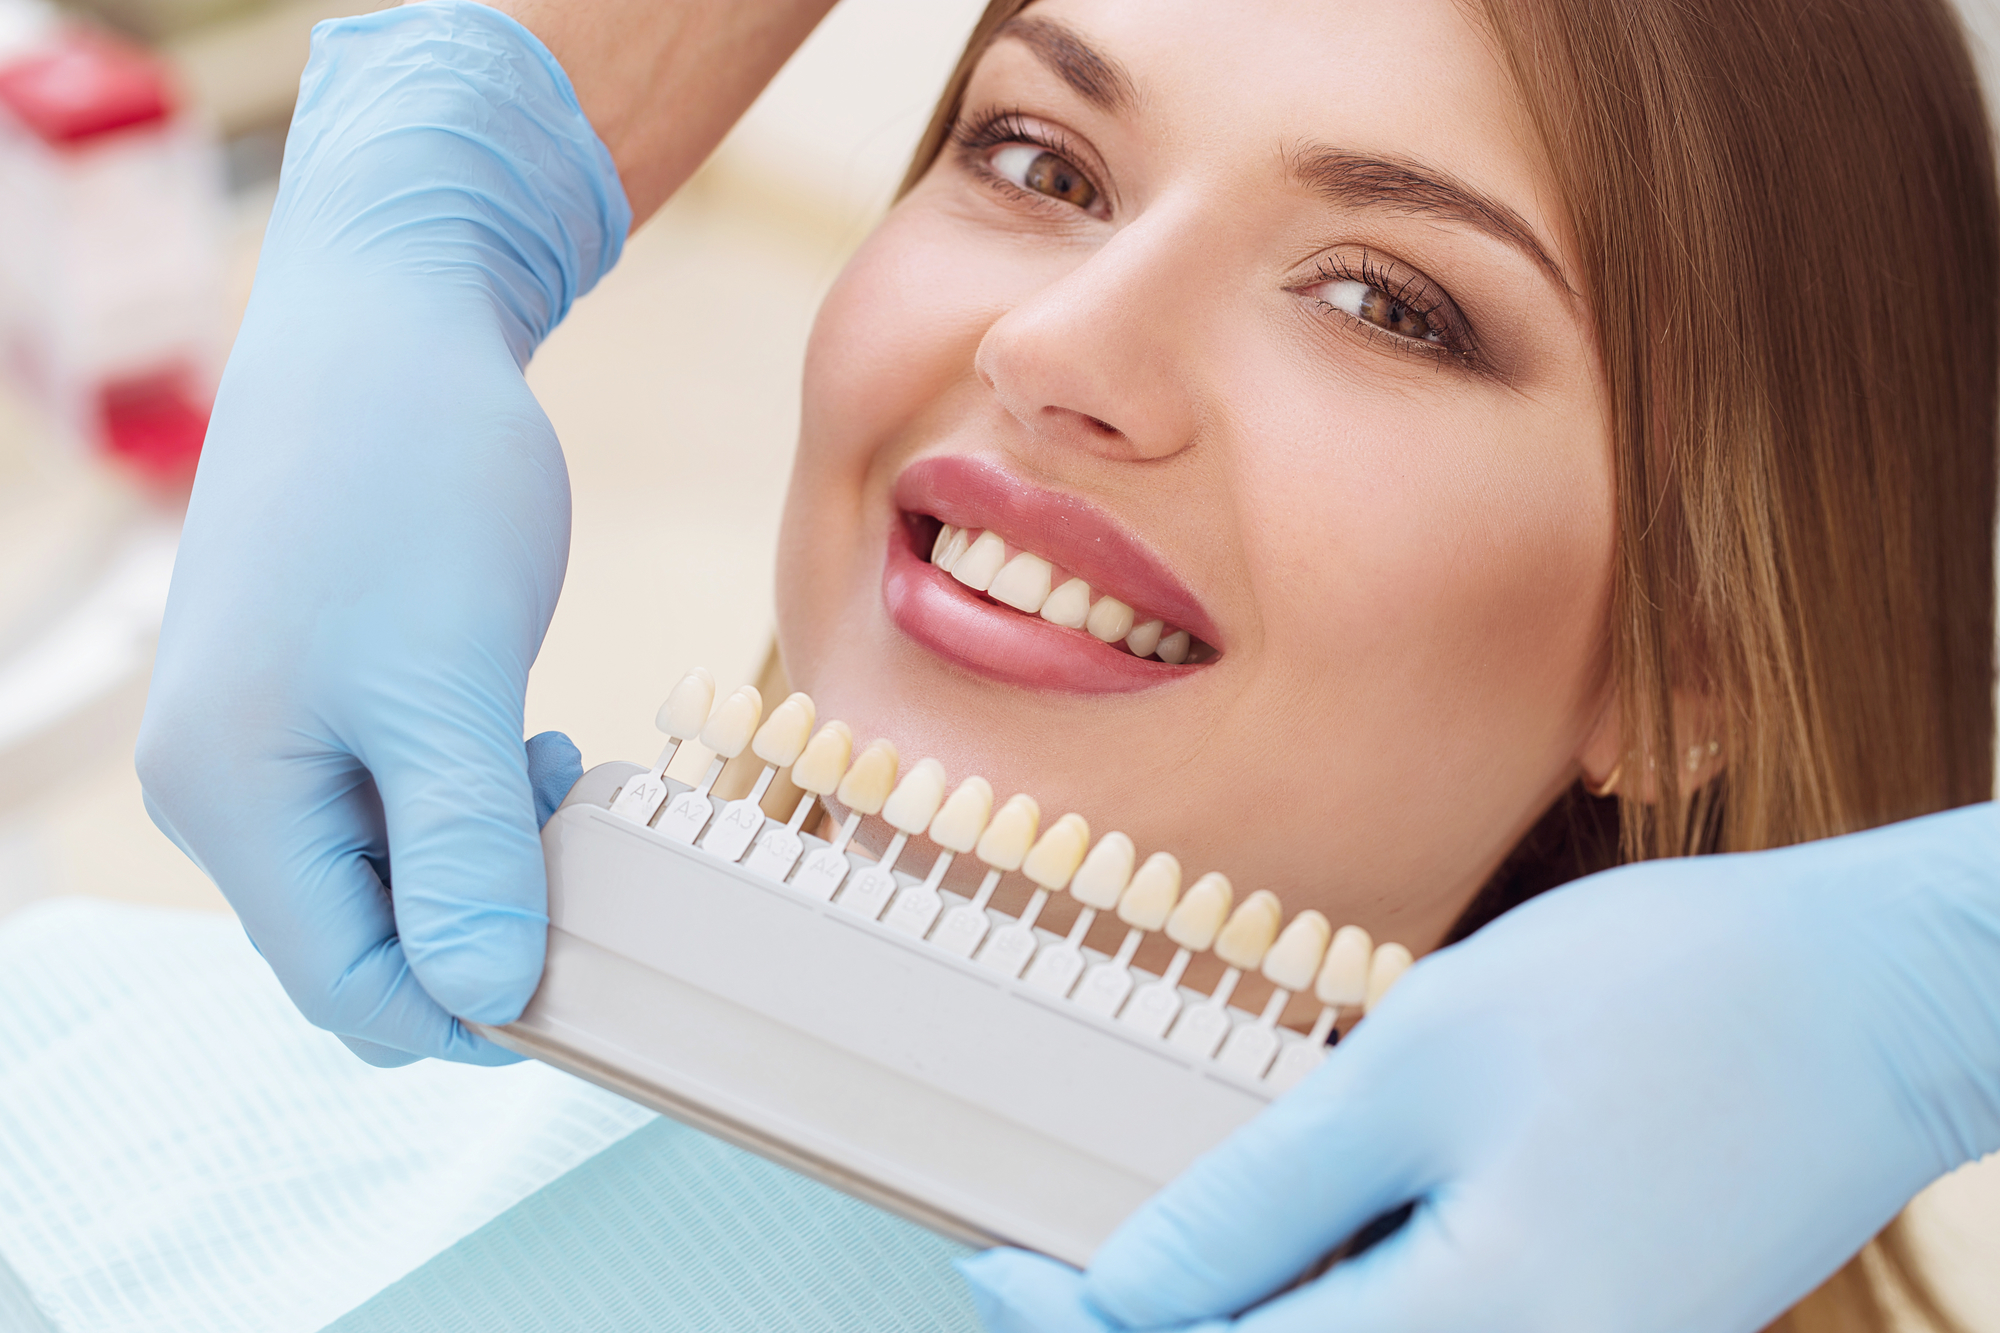 Teeth whitening Session - In-office session to make your teeth whiter. Rise, shine and smile with confidence.